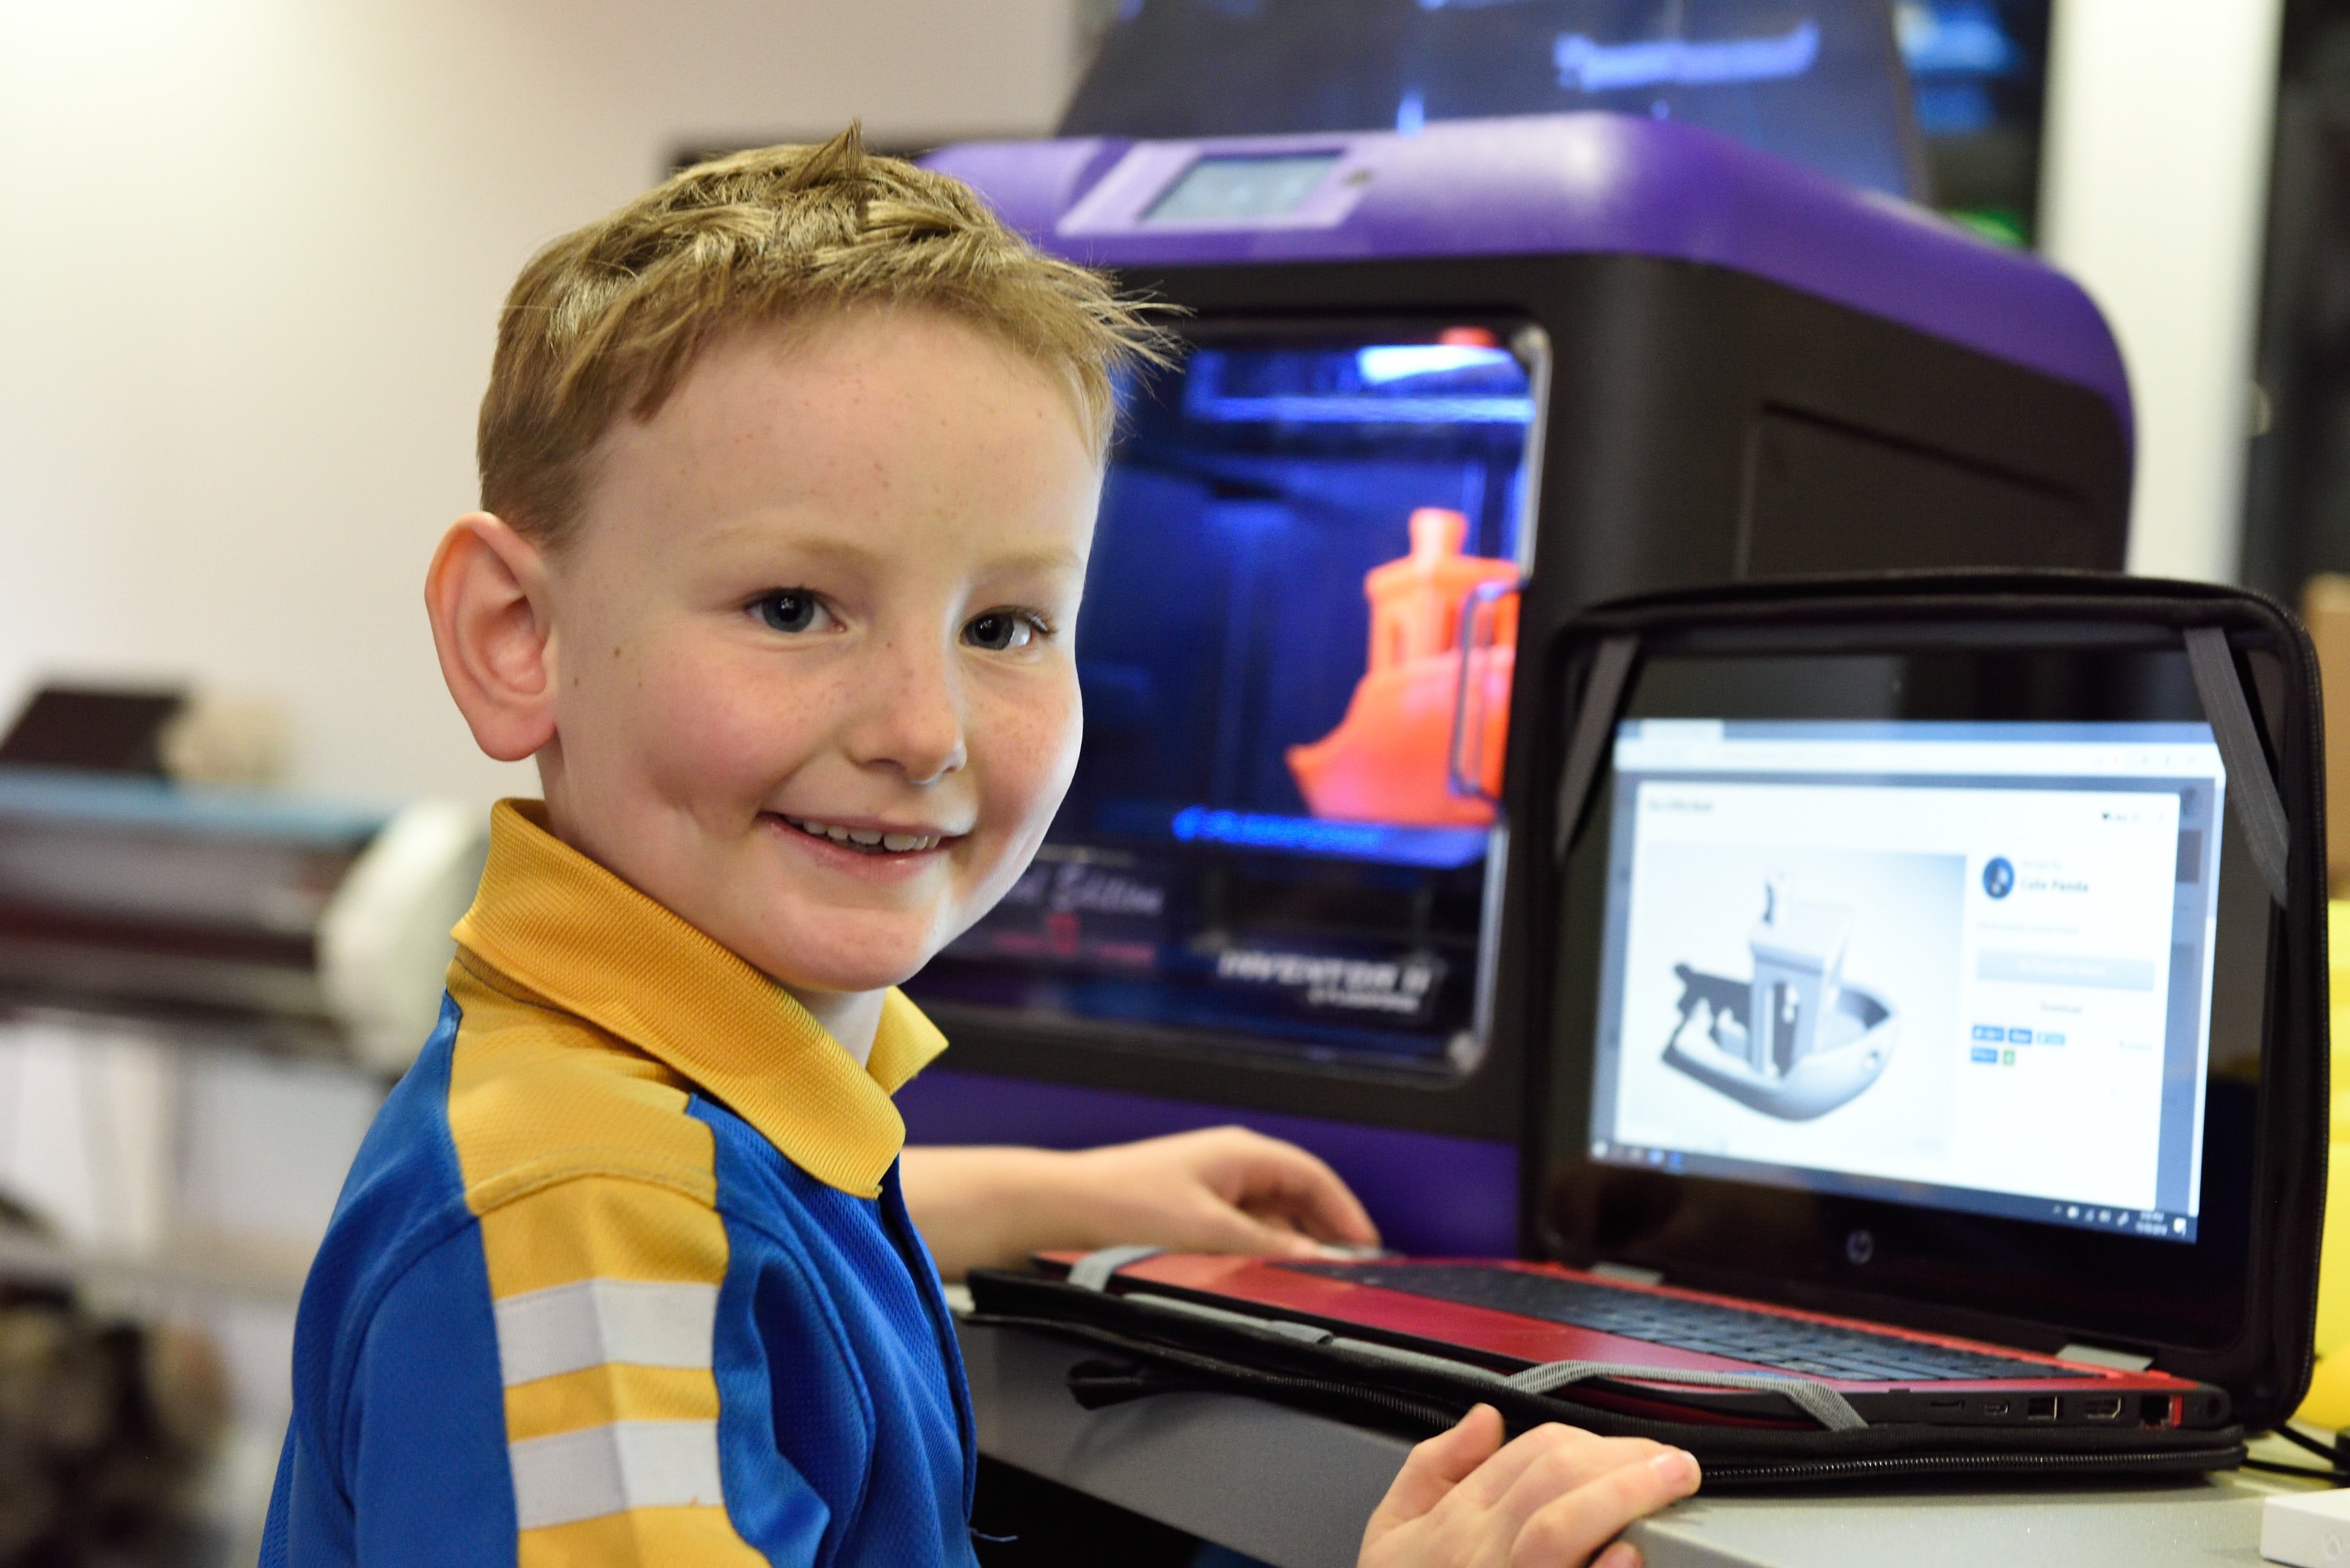 boy smiling in front of a laptop and 3D printer